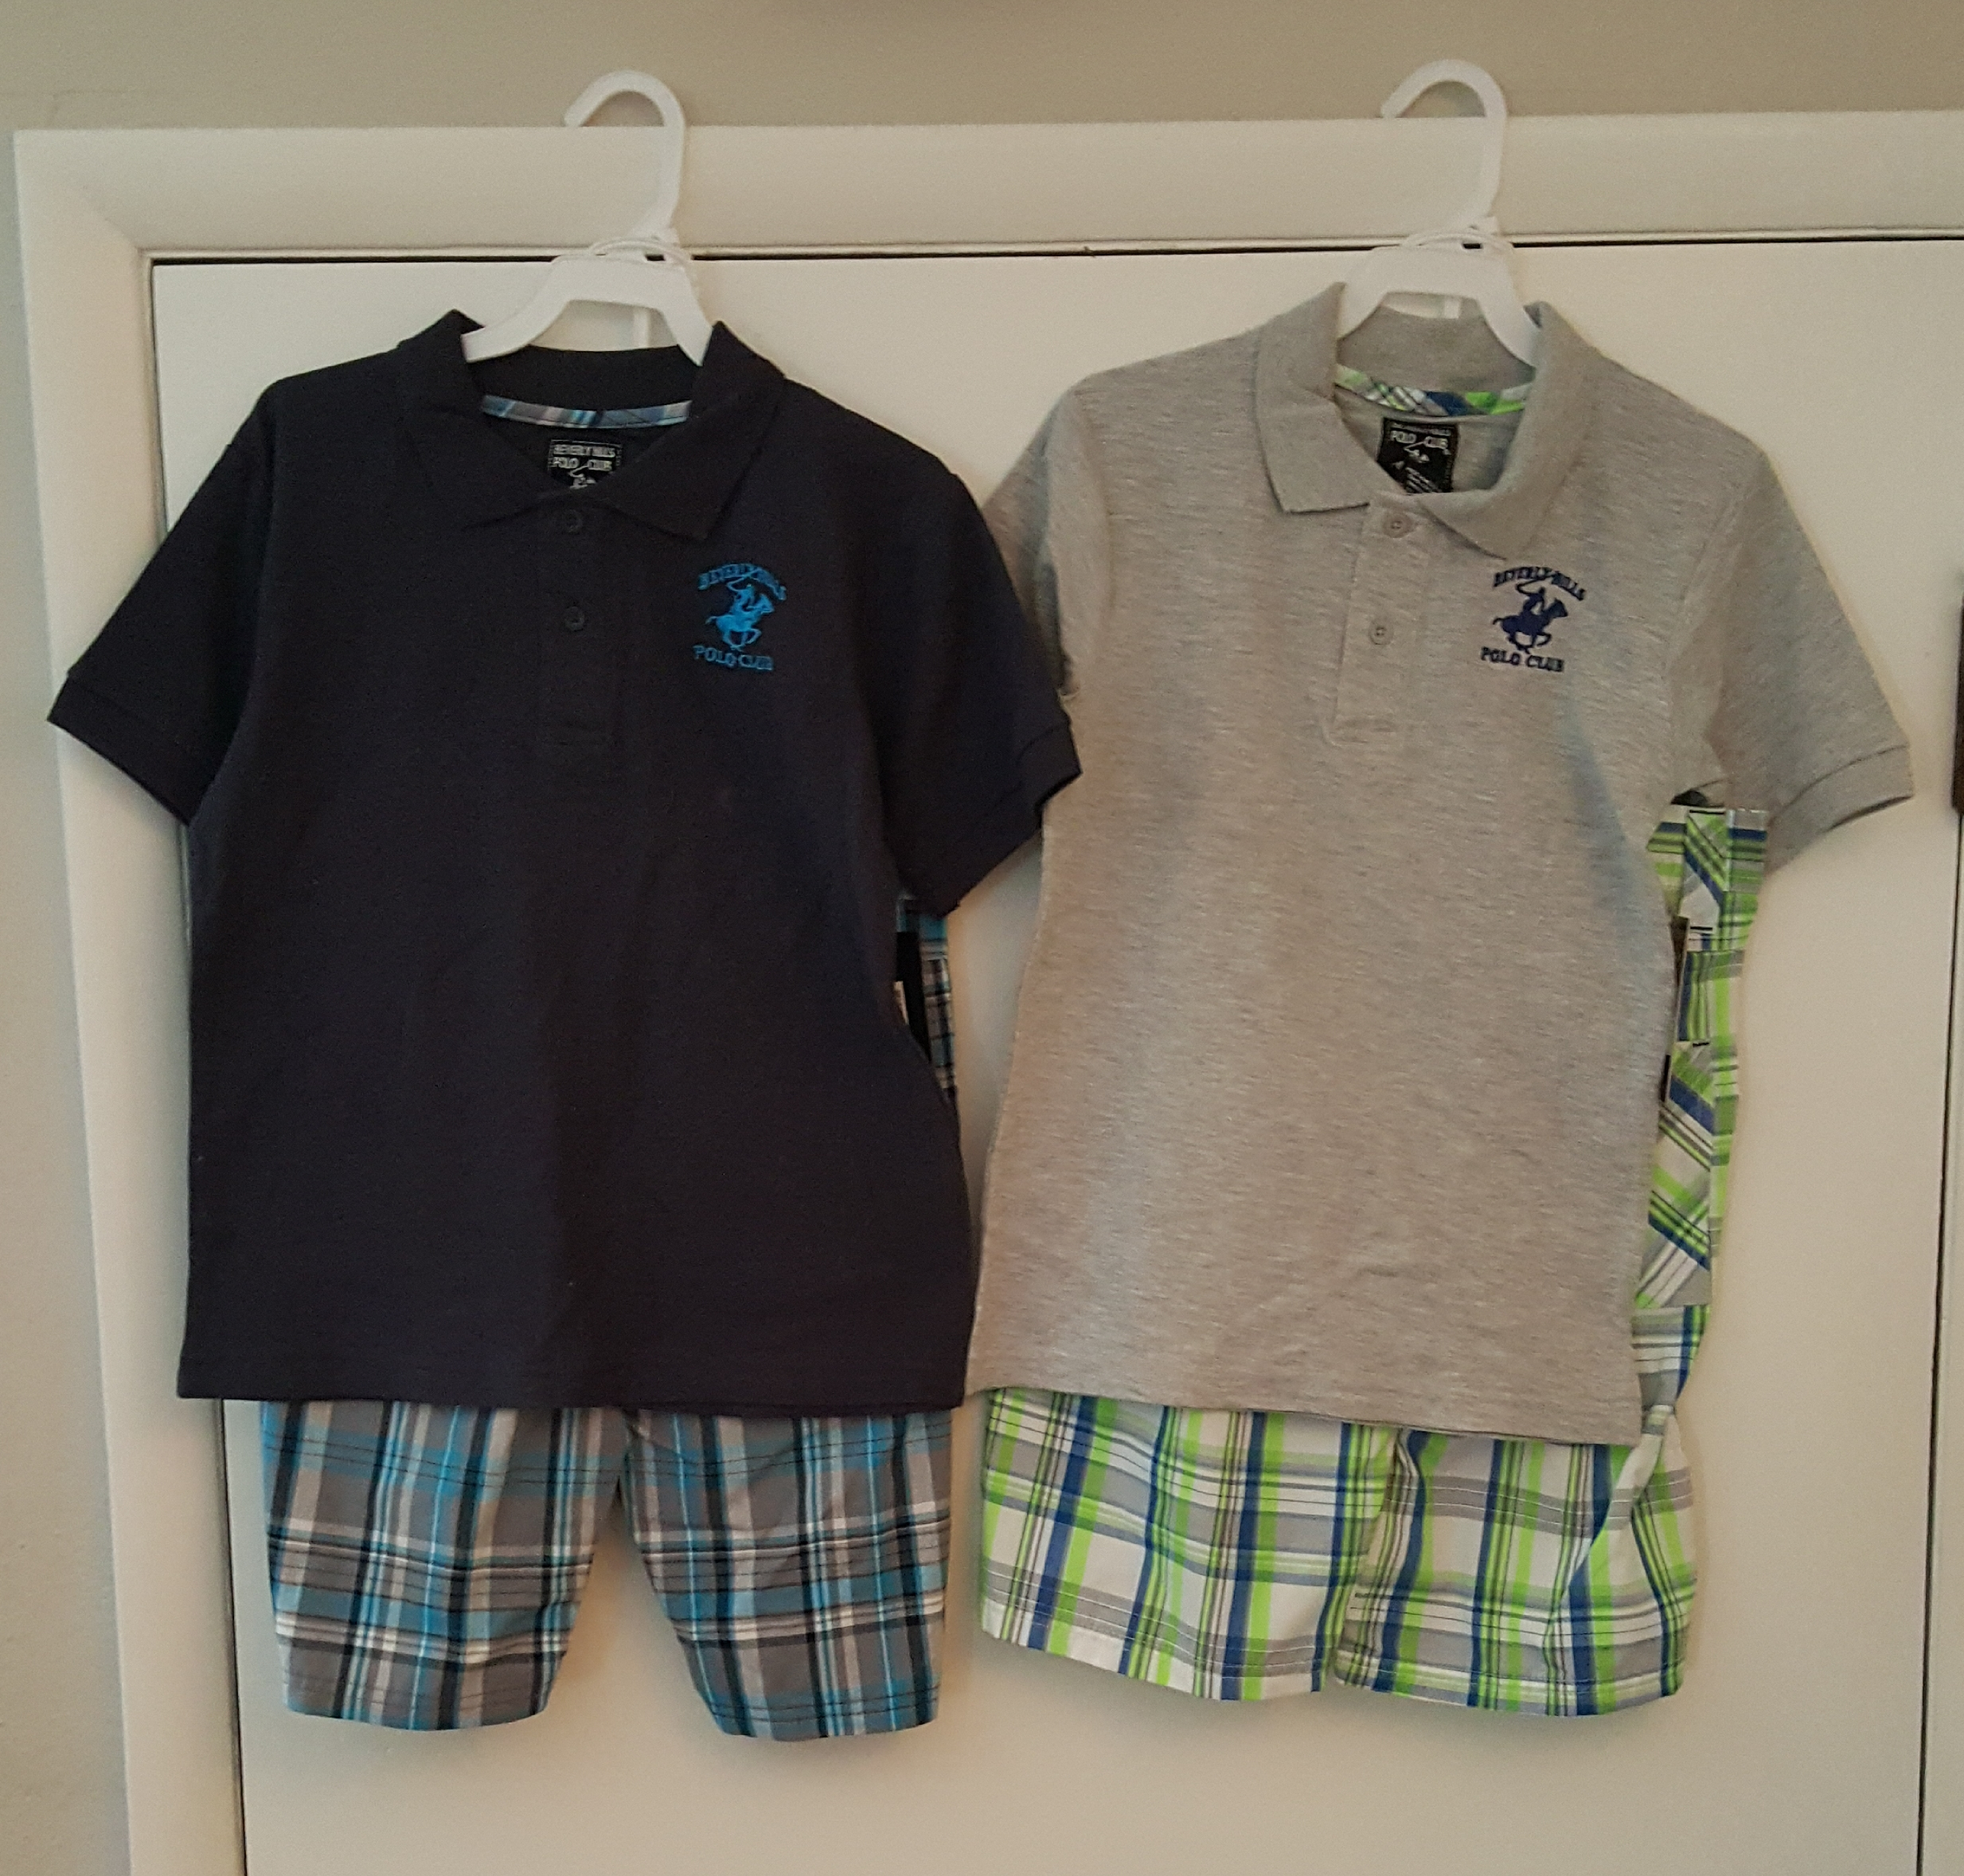 Boy's Size 10 Short Outfits